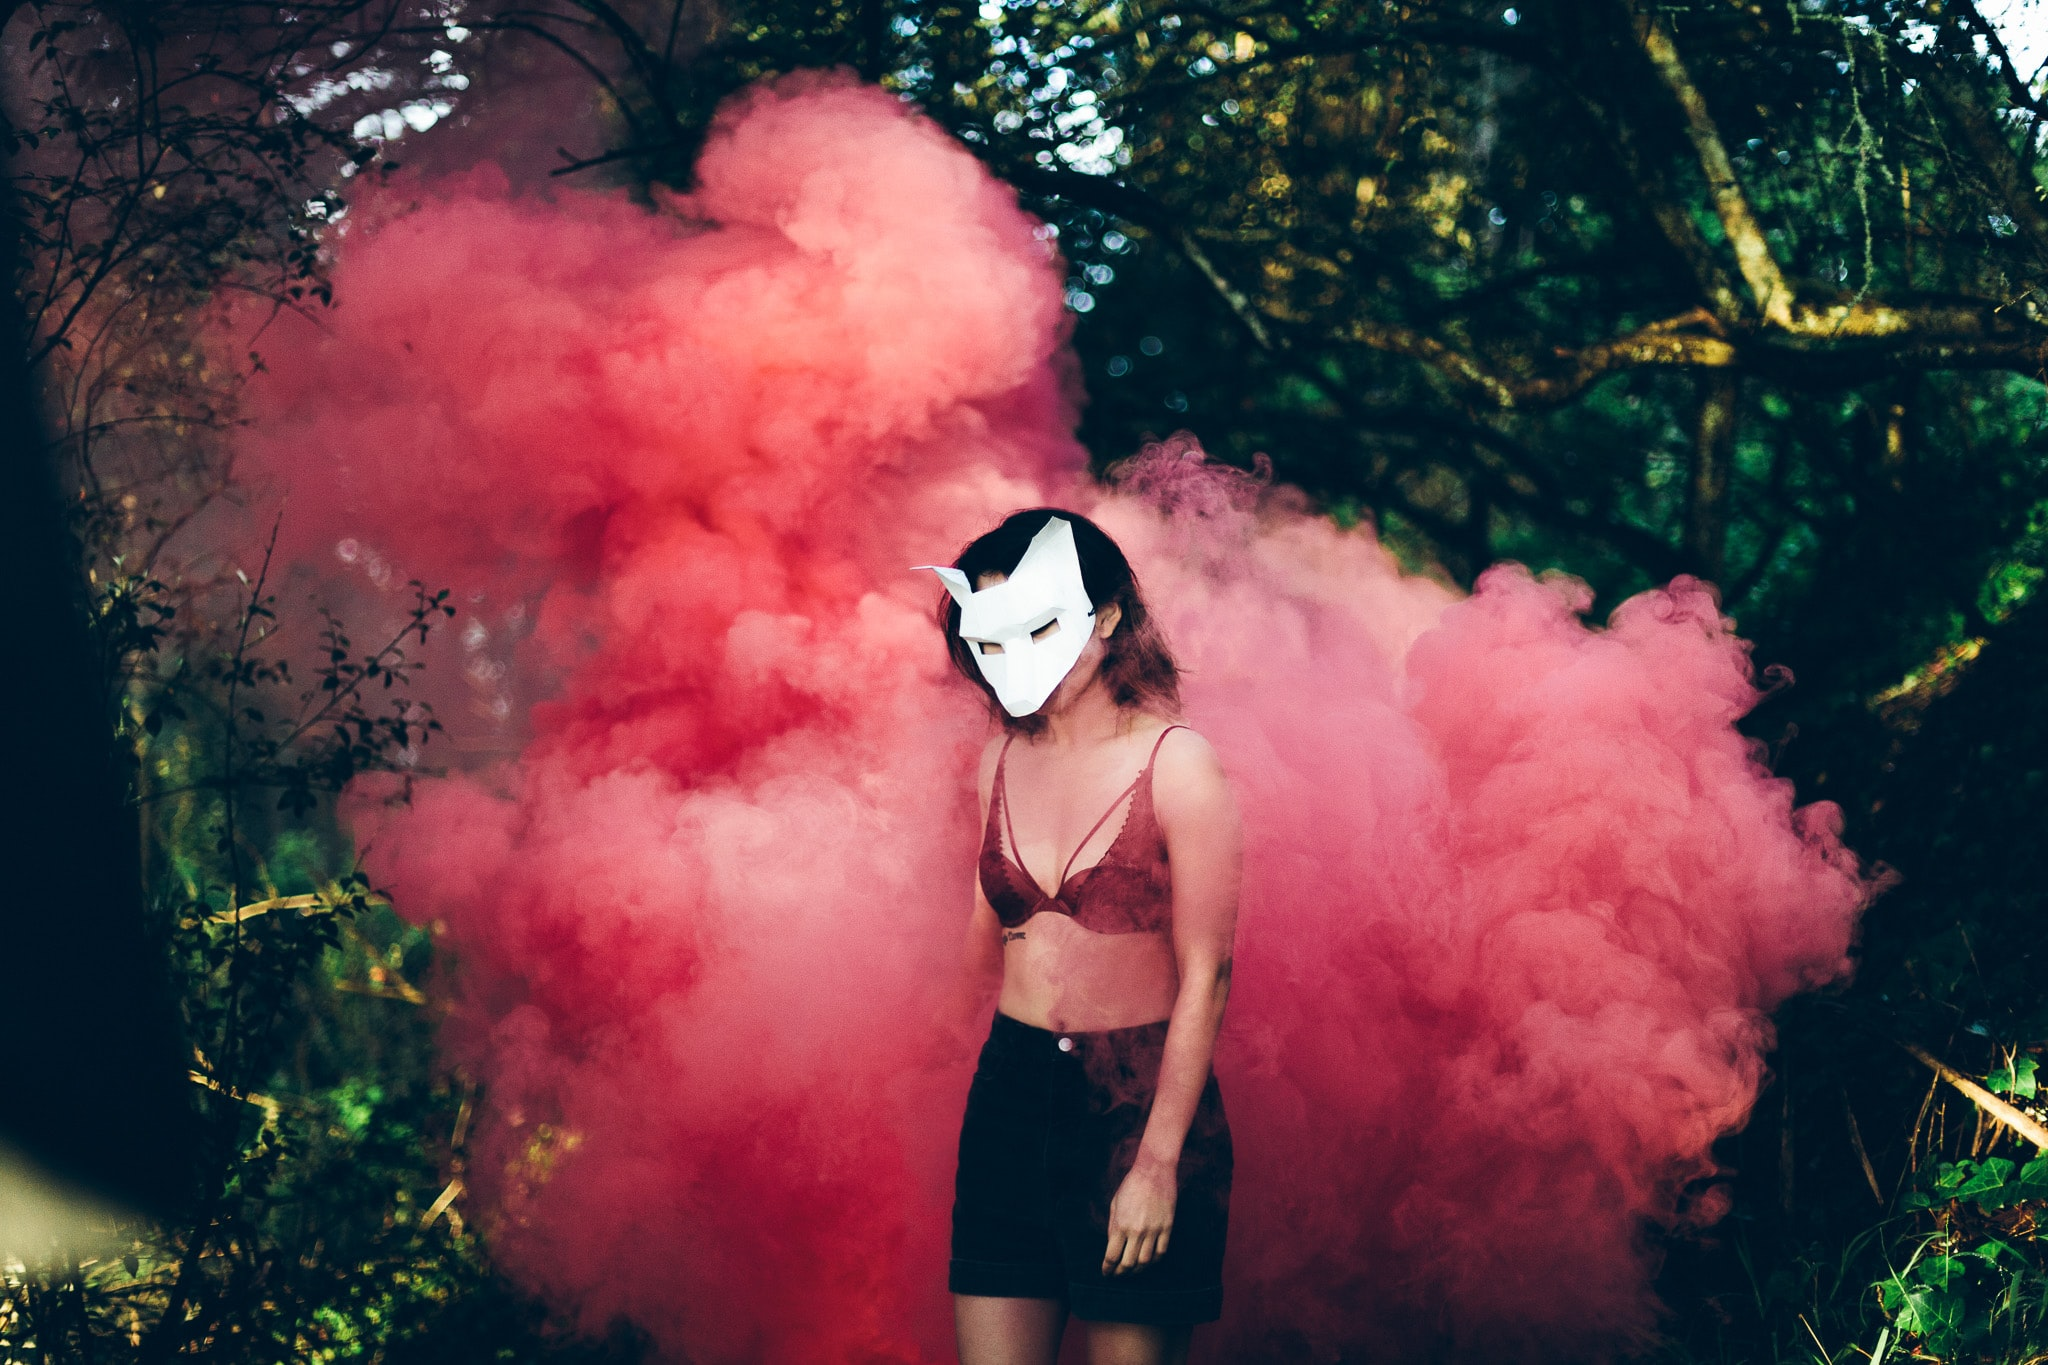 A shirtless woman in a paper wolf mask standing in front of a cloud of pink smoke in a forest environment